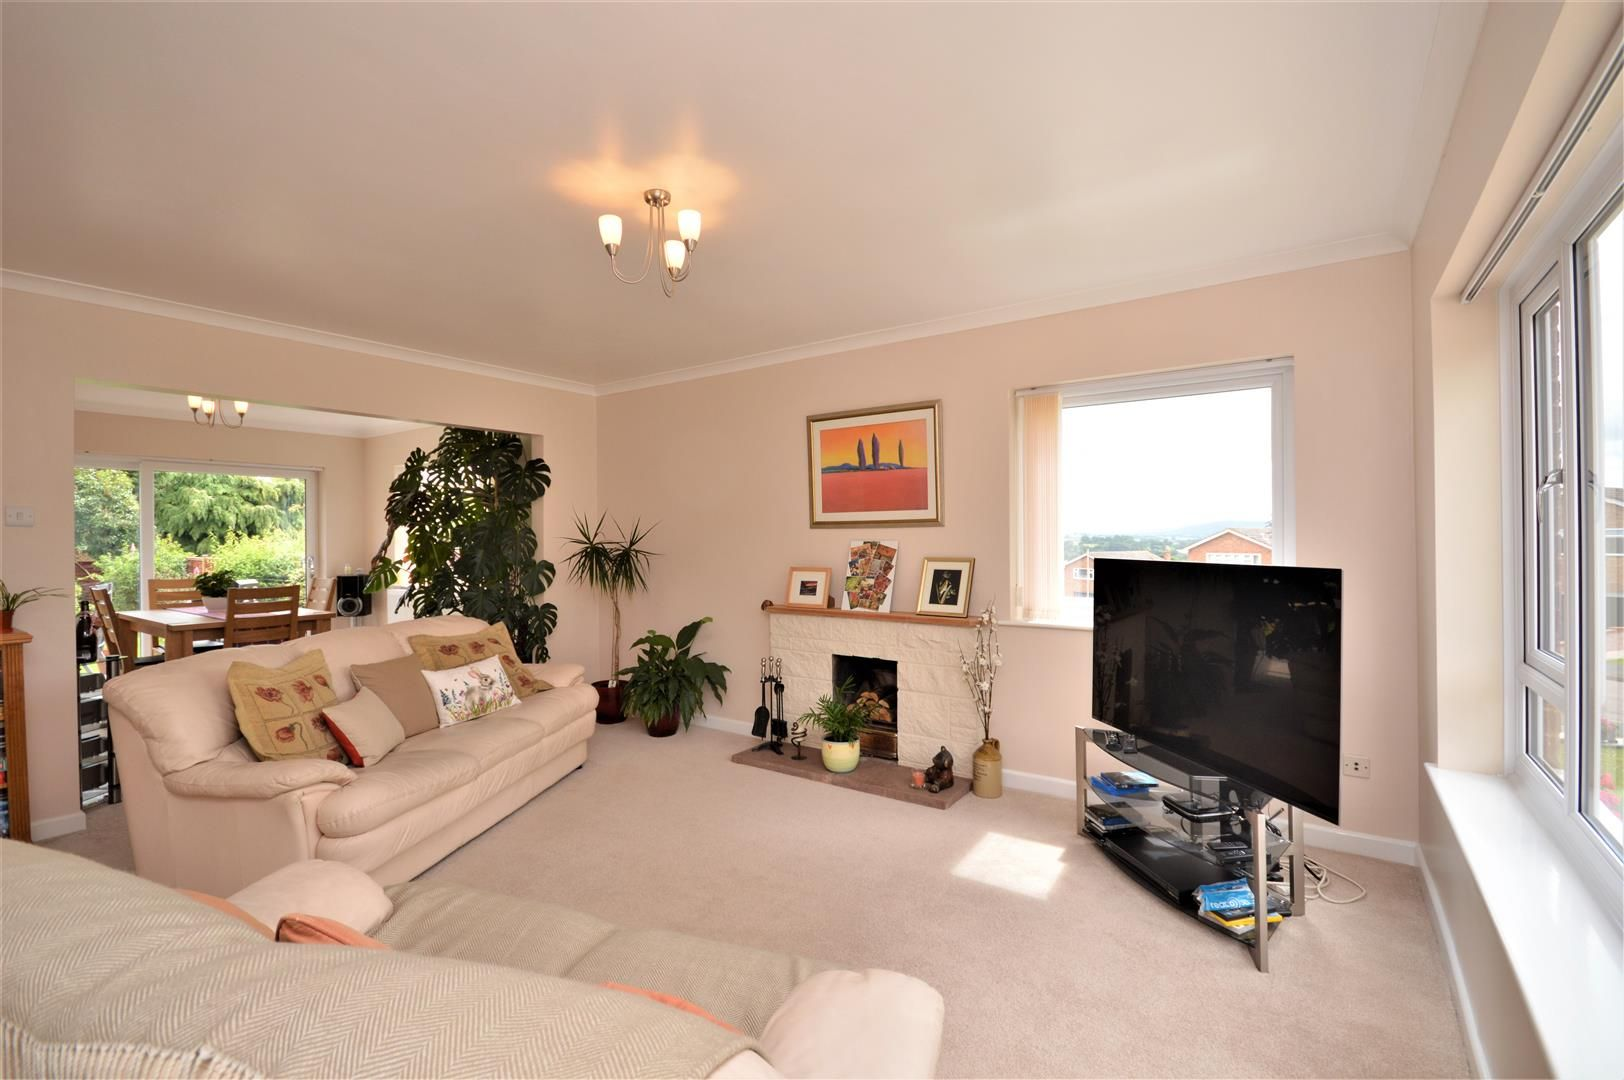 3 bed detached for sale in Kings Caple 4